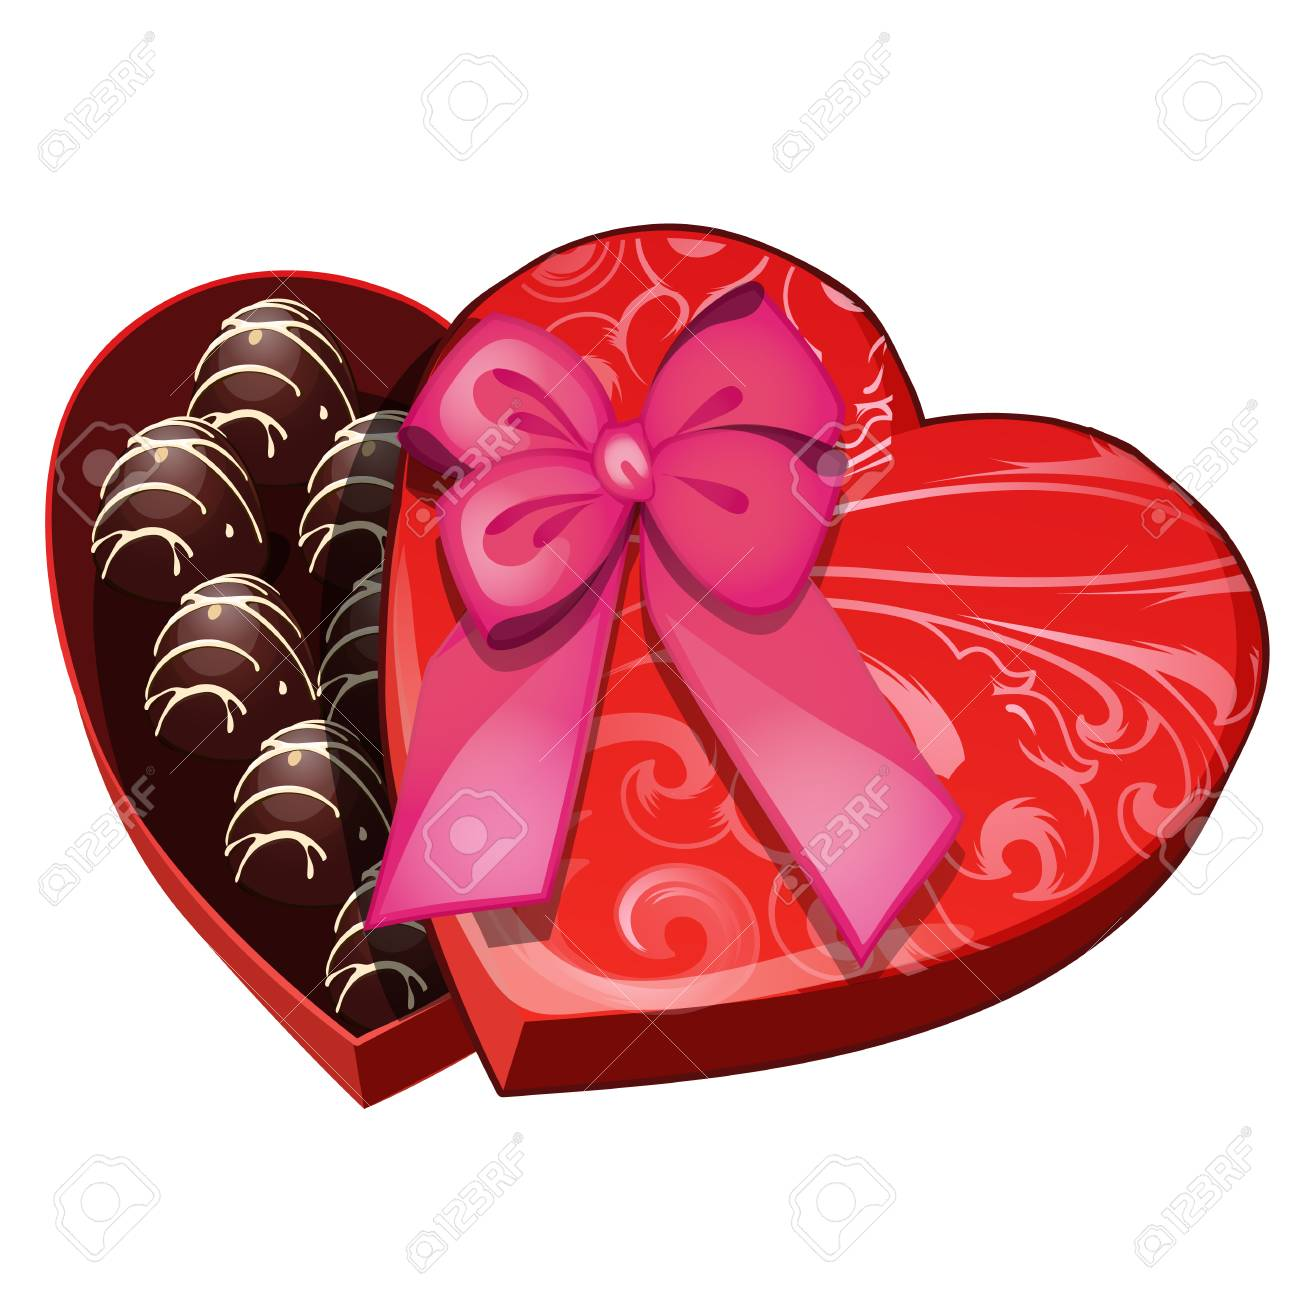 Box Of Chocolates In Shape Of Heart Sweet Romantic Gift For Royalty Free Cliparts Vectors And Stock Illustration Image 100987754